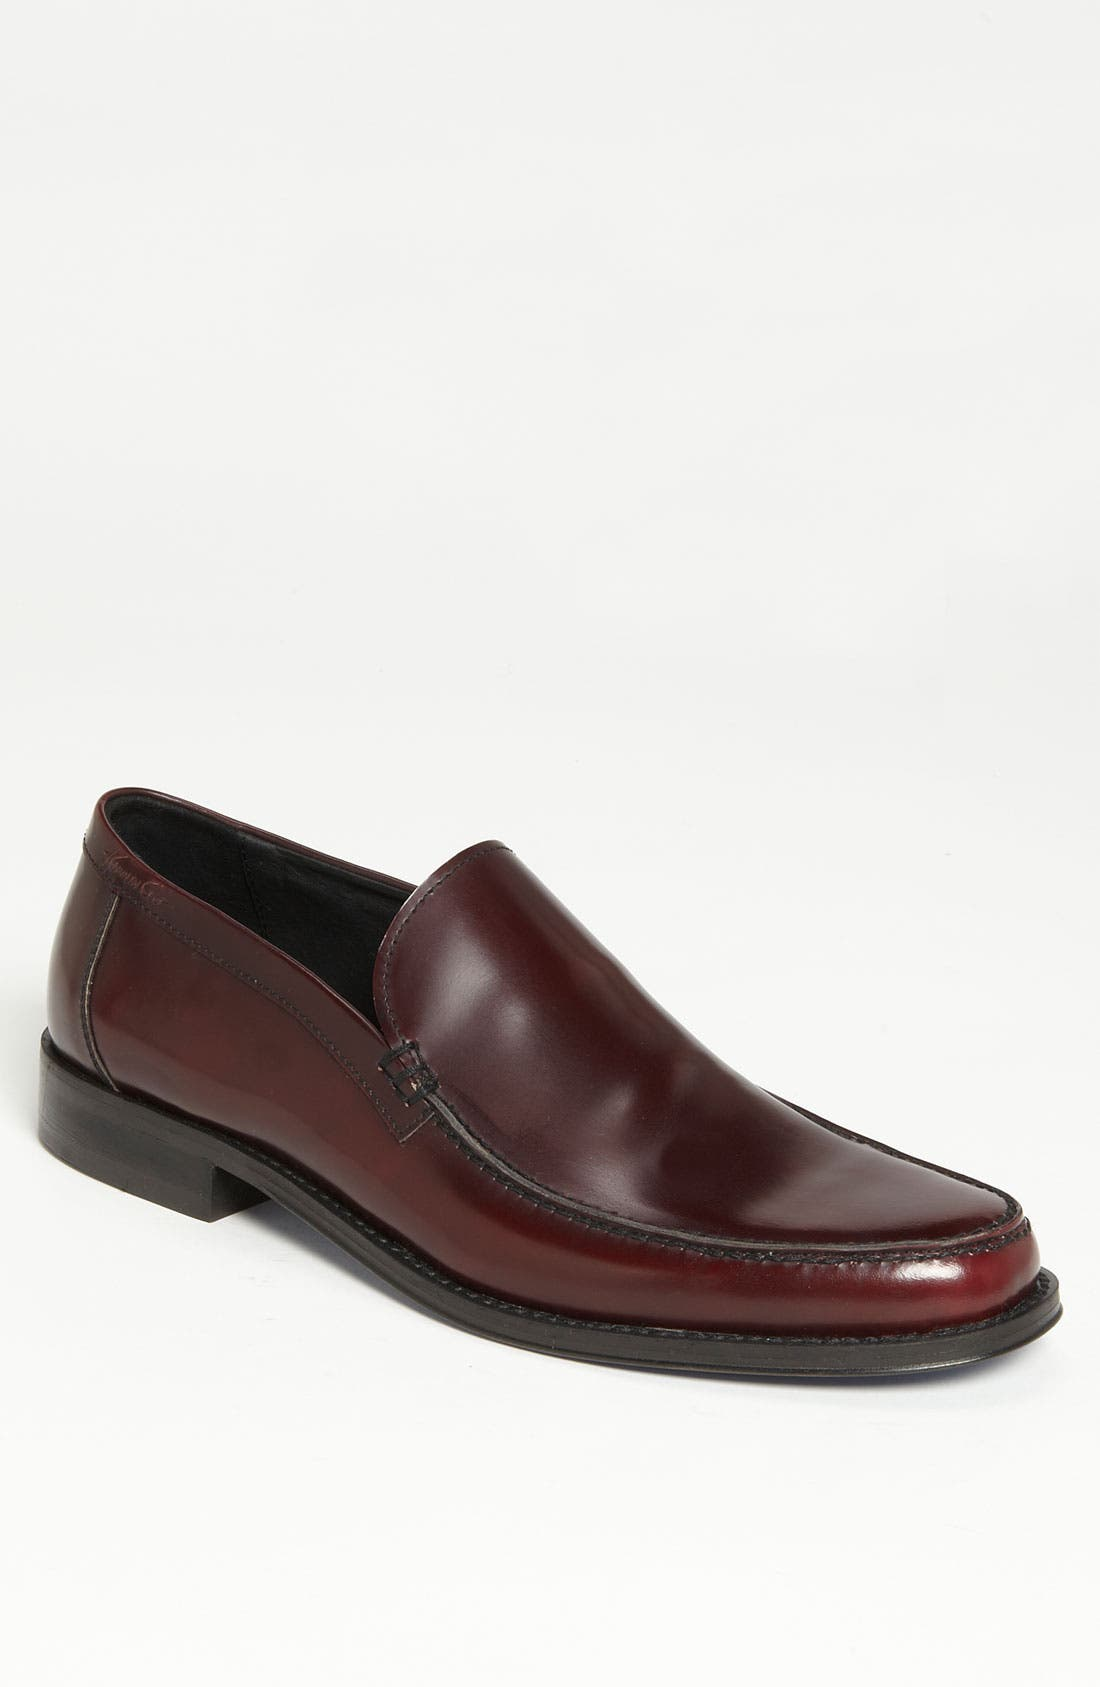 Main Image - Kenneth Cole New York 'New Leaf' Moc Toe Loafer